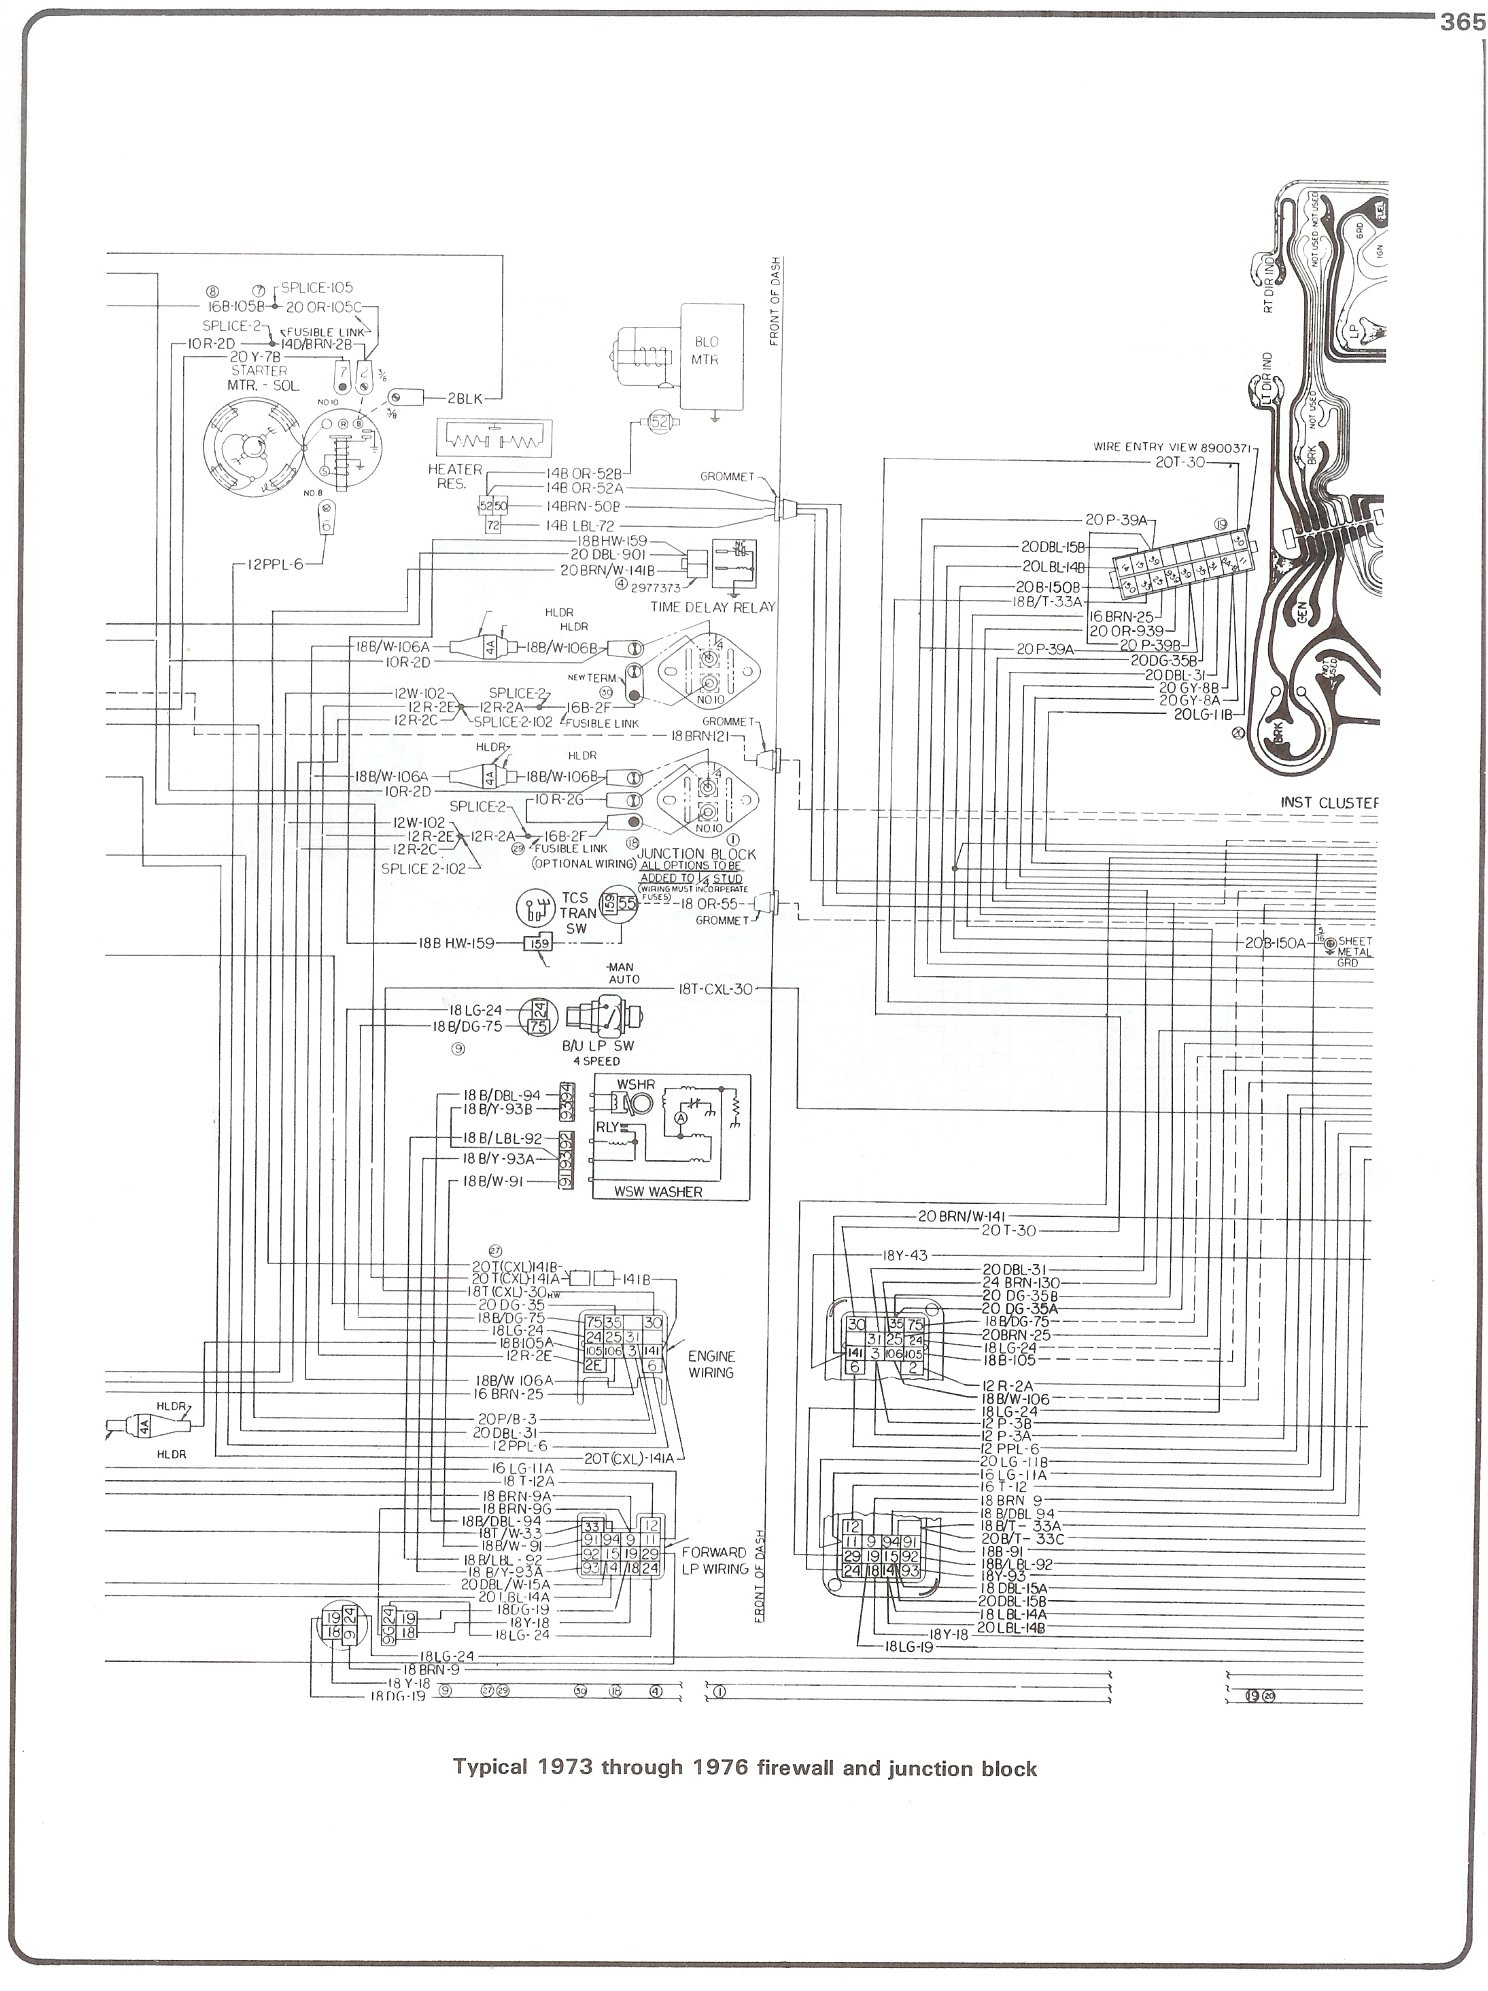 86 Chevy Truck Wiring Harness - Wiring Diagram 500 on chevy alternator wiring info, chevy maintenance schedule, chevy speaker wiring, chevy electrical diagrams, chevy oil pressure sending unit, chevy truck wiring, gmc fuse box diagrams, 1999 chevrolet truck diagrams, chevy headlight switch wiring, chevy gas line diagrams, chevy starting system, chevy truck diagrams, chevy heater core replacement, chevy radio wiring, chevy cooling system, chevy starter diagrams, chevy brake diagrams, chevy alternator diagrams, chevy accessories, chevy wiring harness,